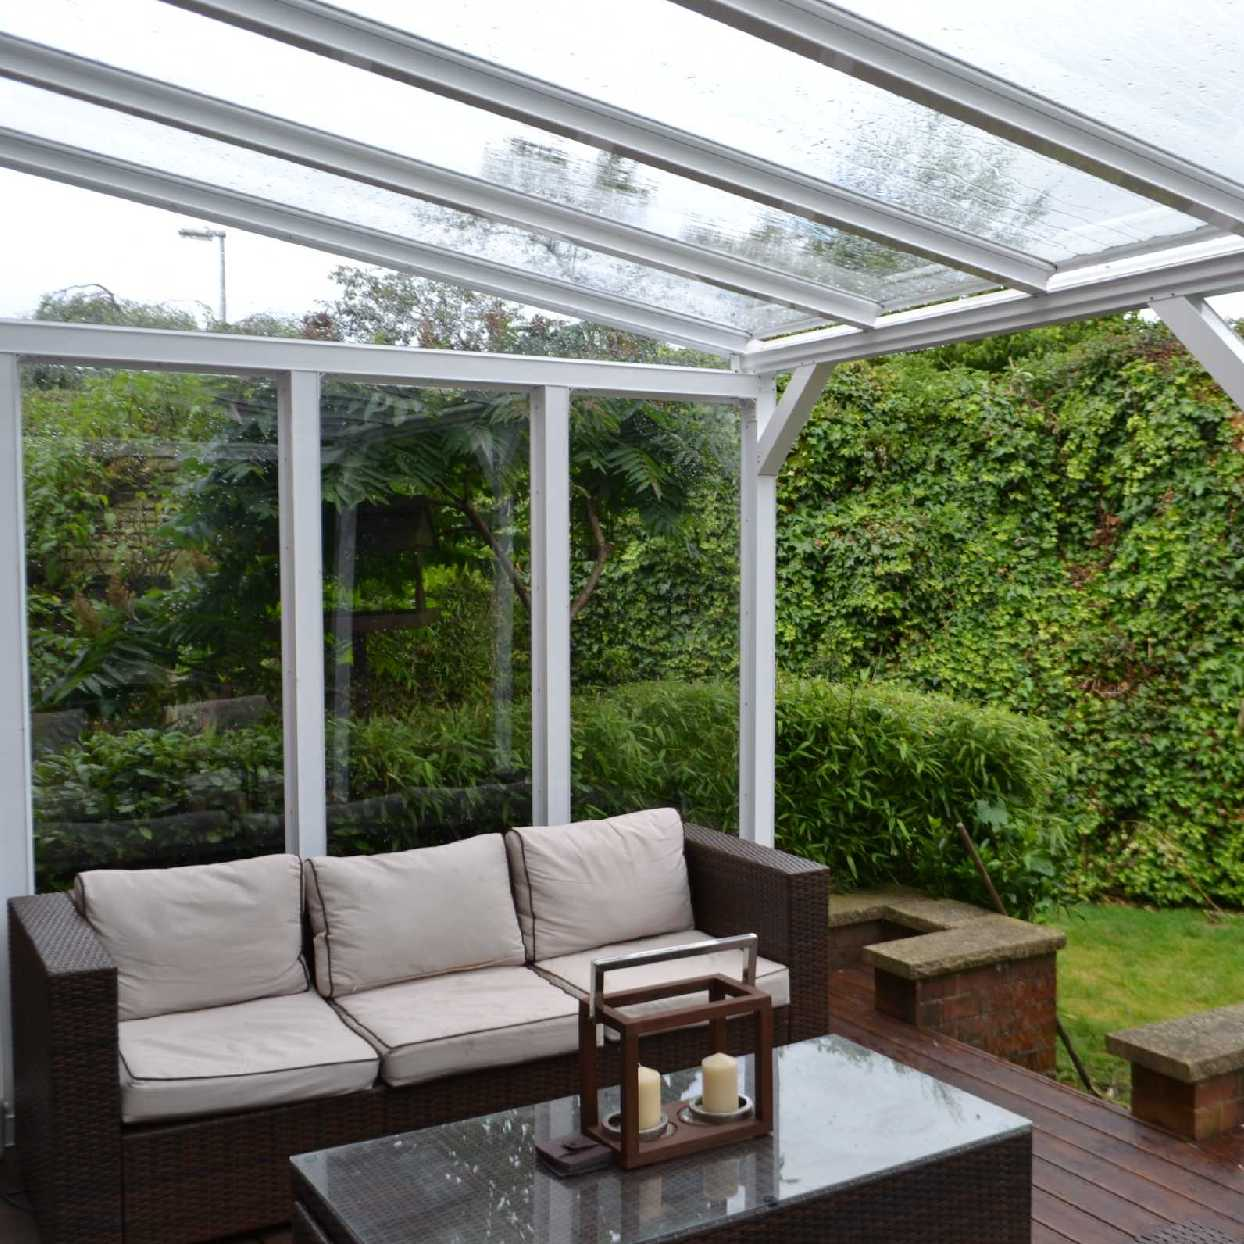 Great selection of Omega Smart White Lean-To Canopy with 16mm Polycarbonate Glazing - 2.1m (W) x 1.5m (P), (2) Supporting Posts